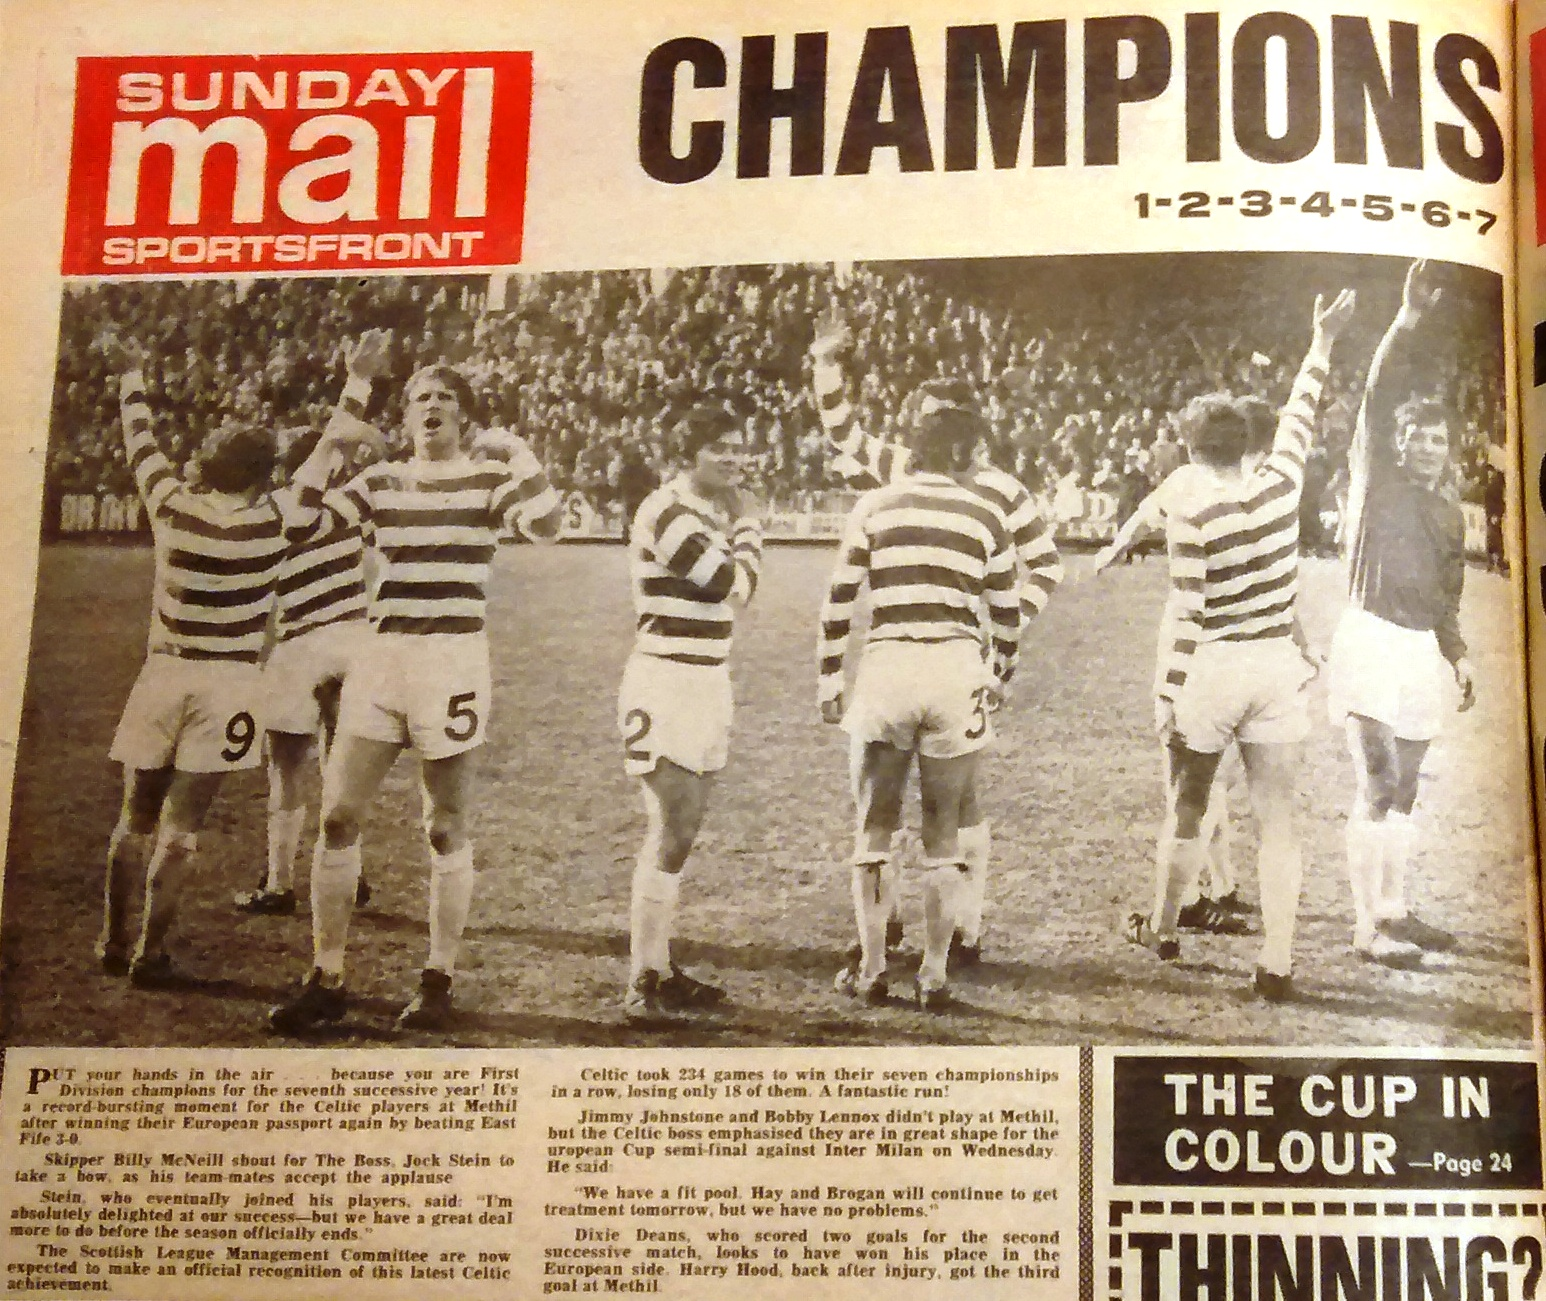 SEVEN IN A ROW 1972 STYLE